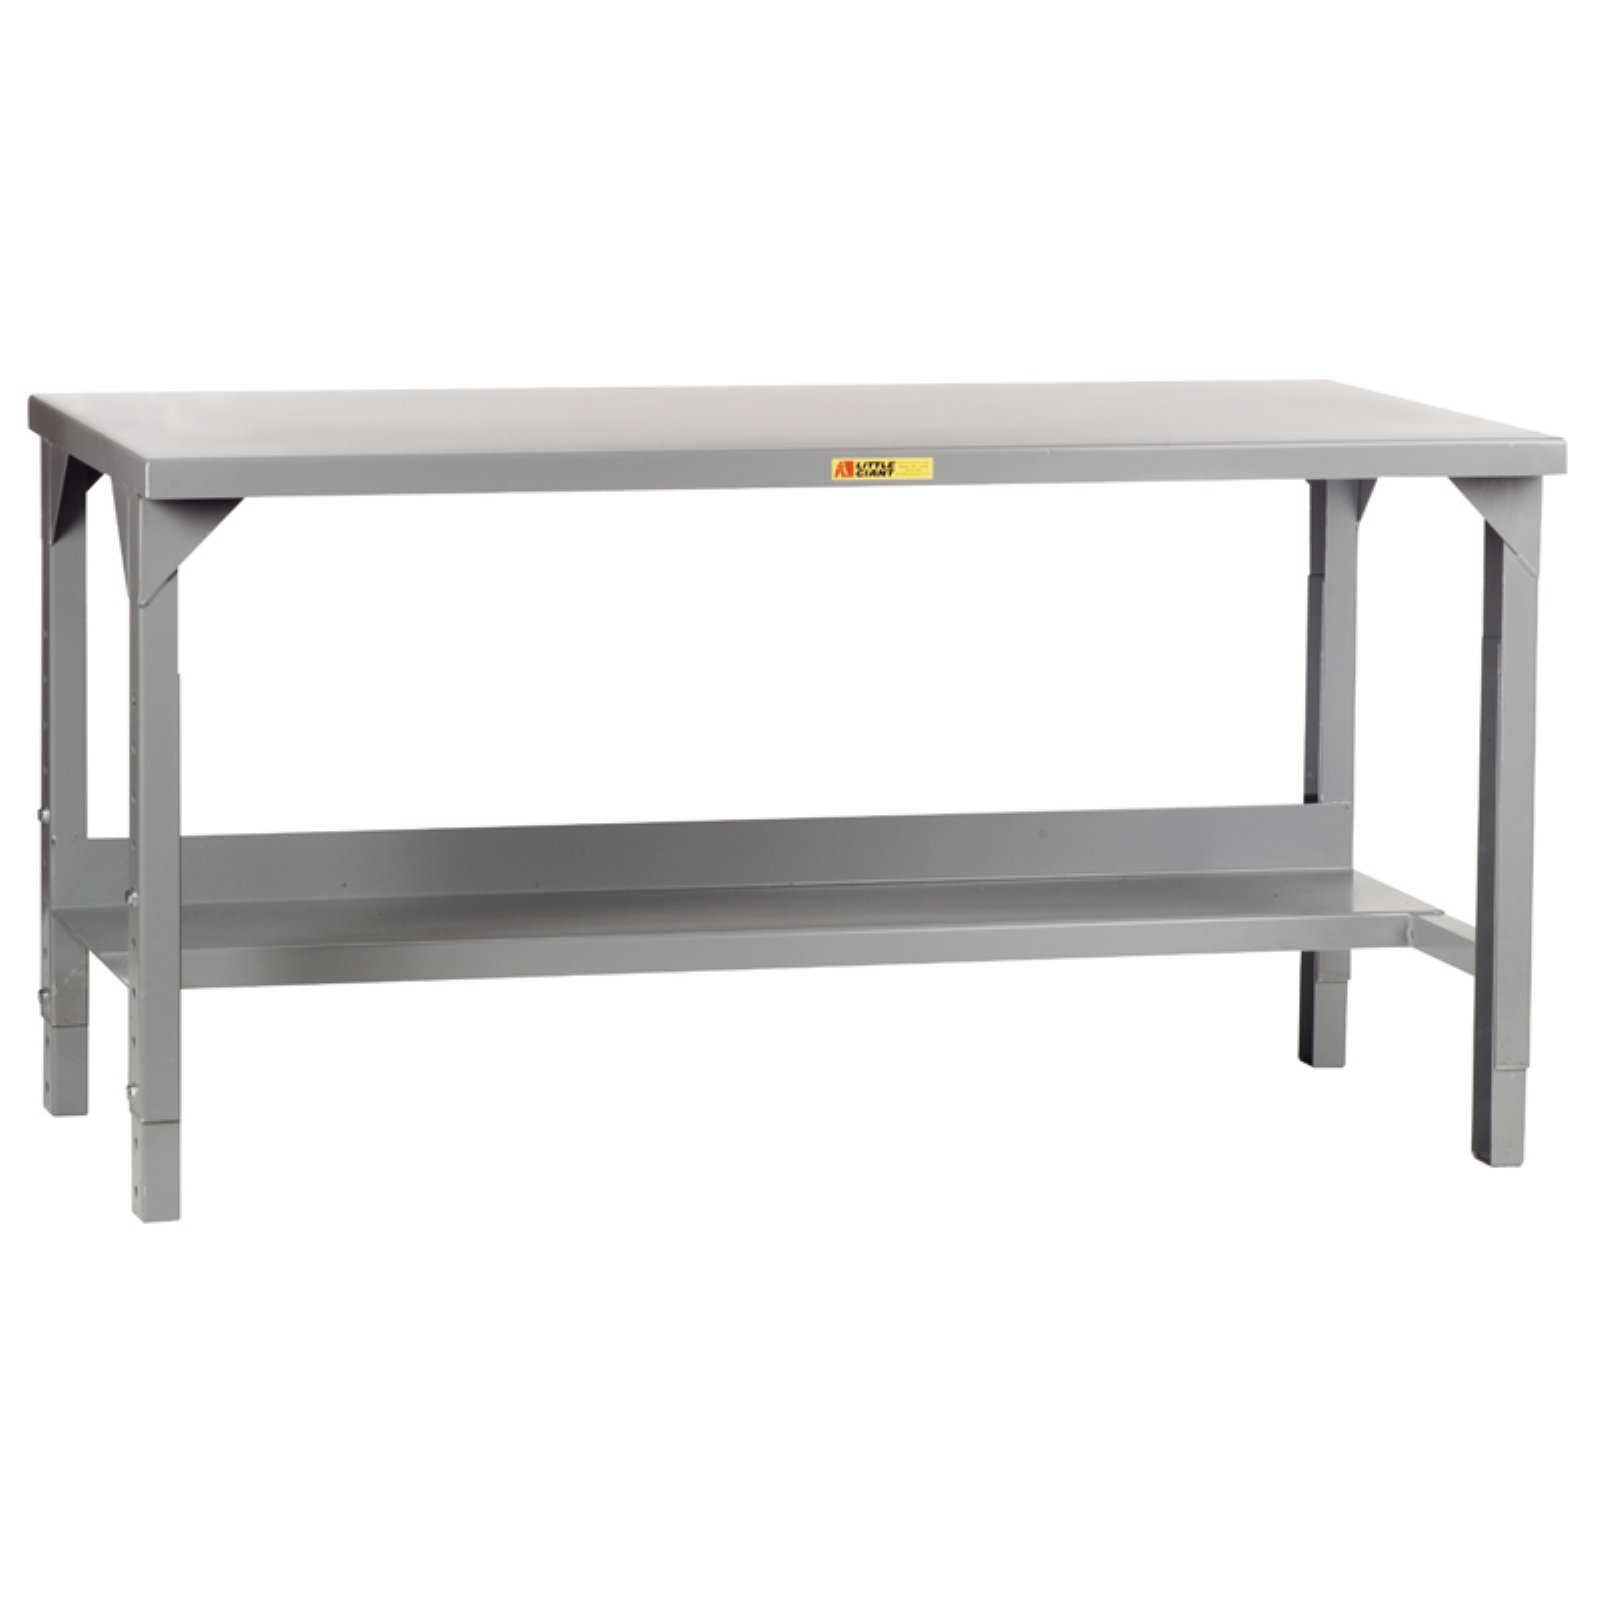 Little Giant 3000 lb. Adjustable Height Workbench by Brennan Equipment and Manufacturing Inc